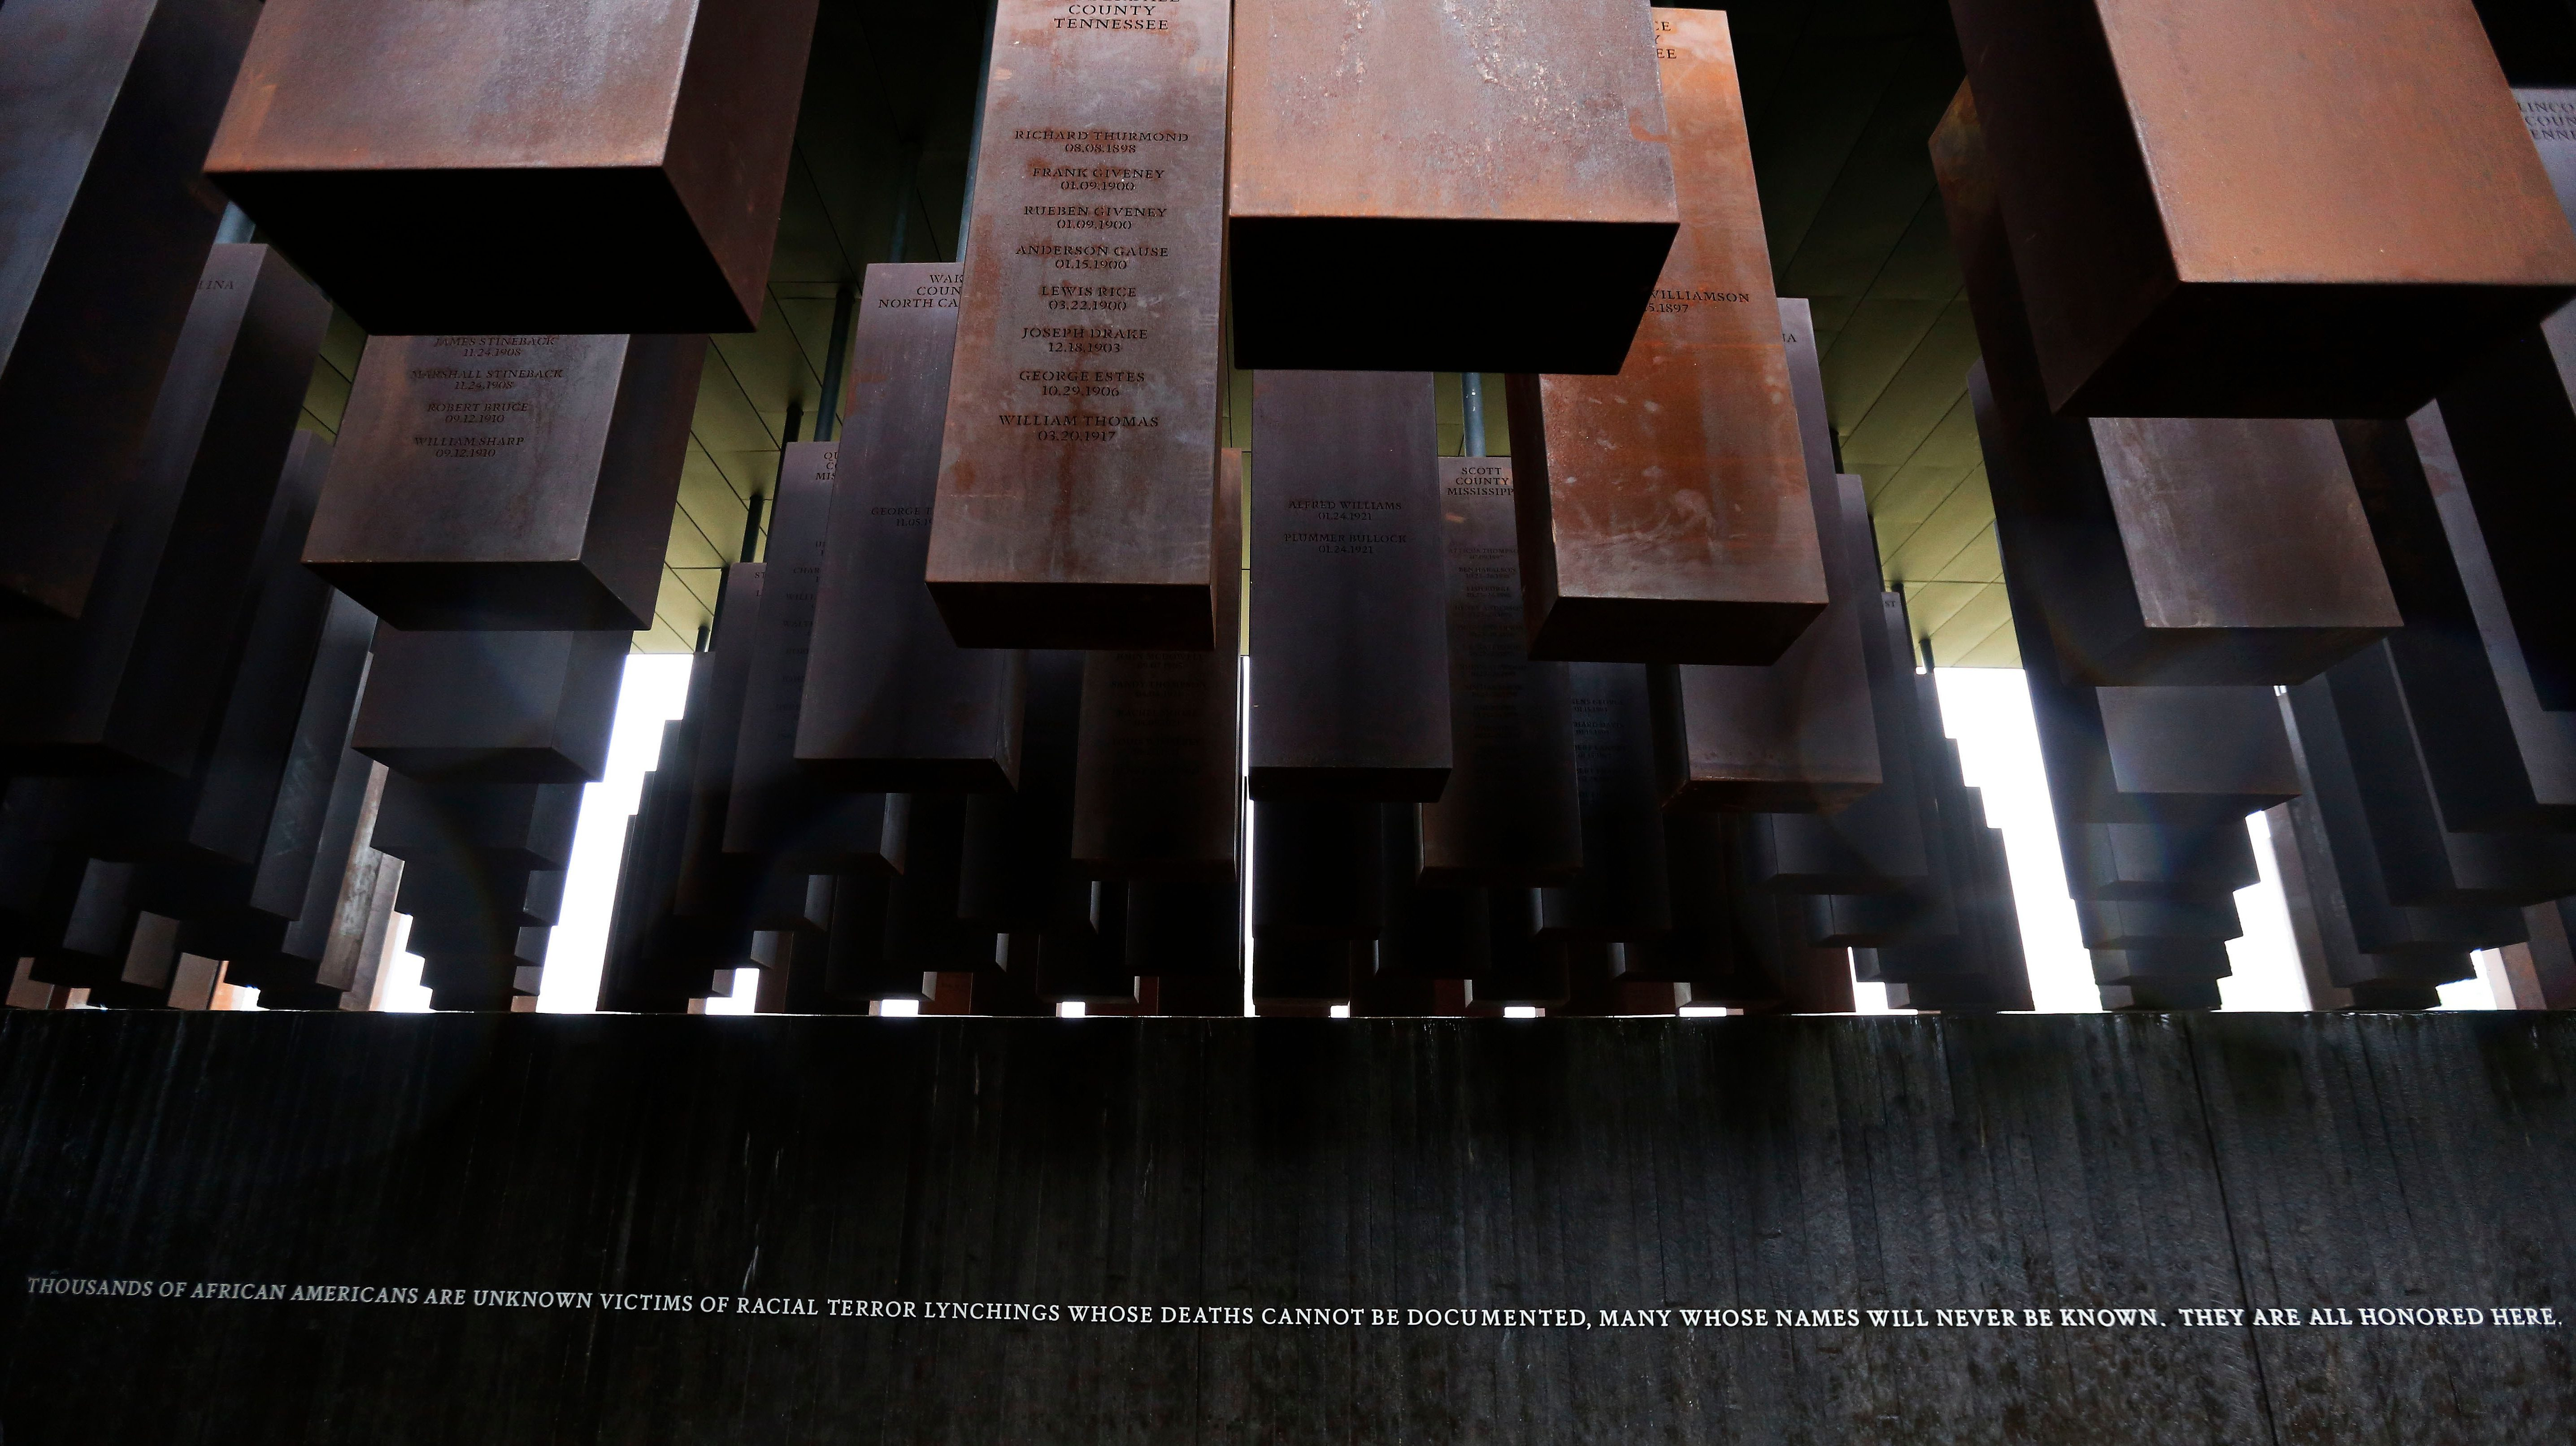 National Memorial for Peace and Justice is a memorial in Alabama that honors thousands of people killed in racist lynchings.